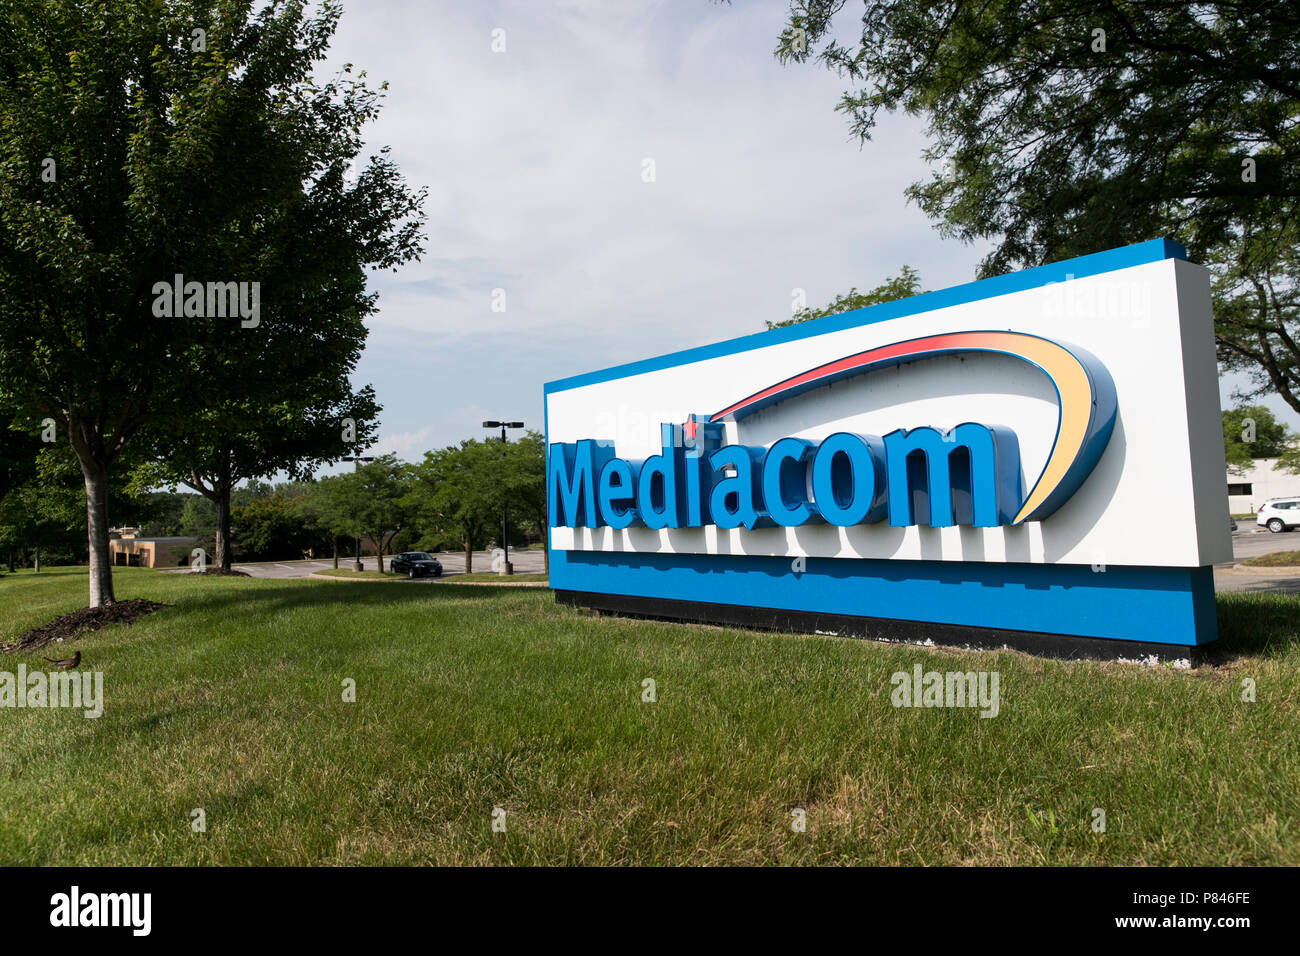 Mediacom Stock Photos & Mediacom Stock Images - Alamy